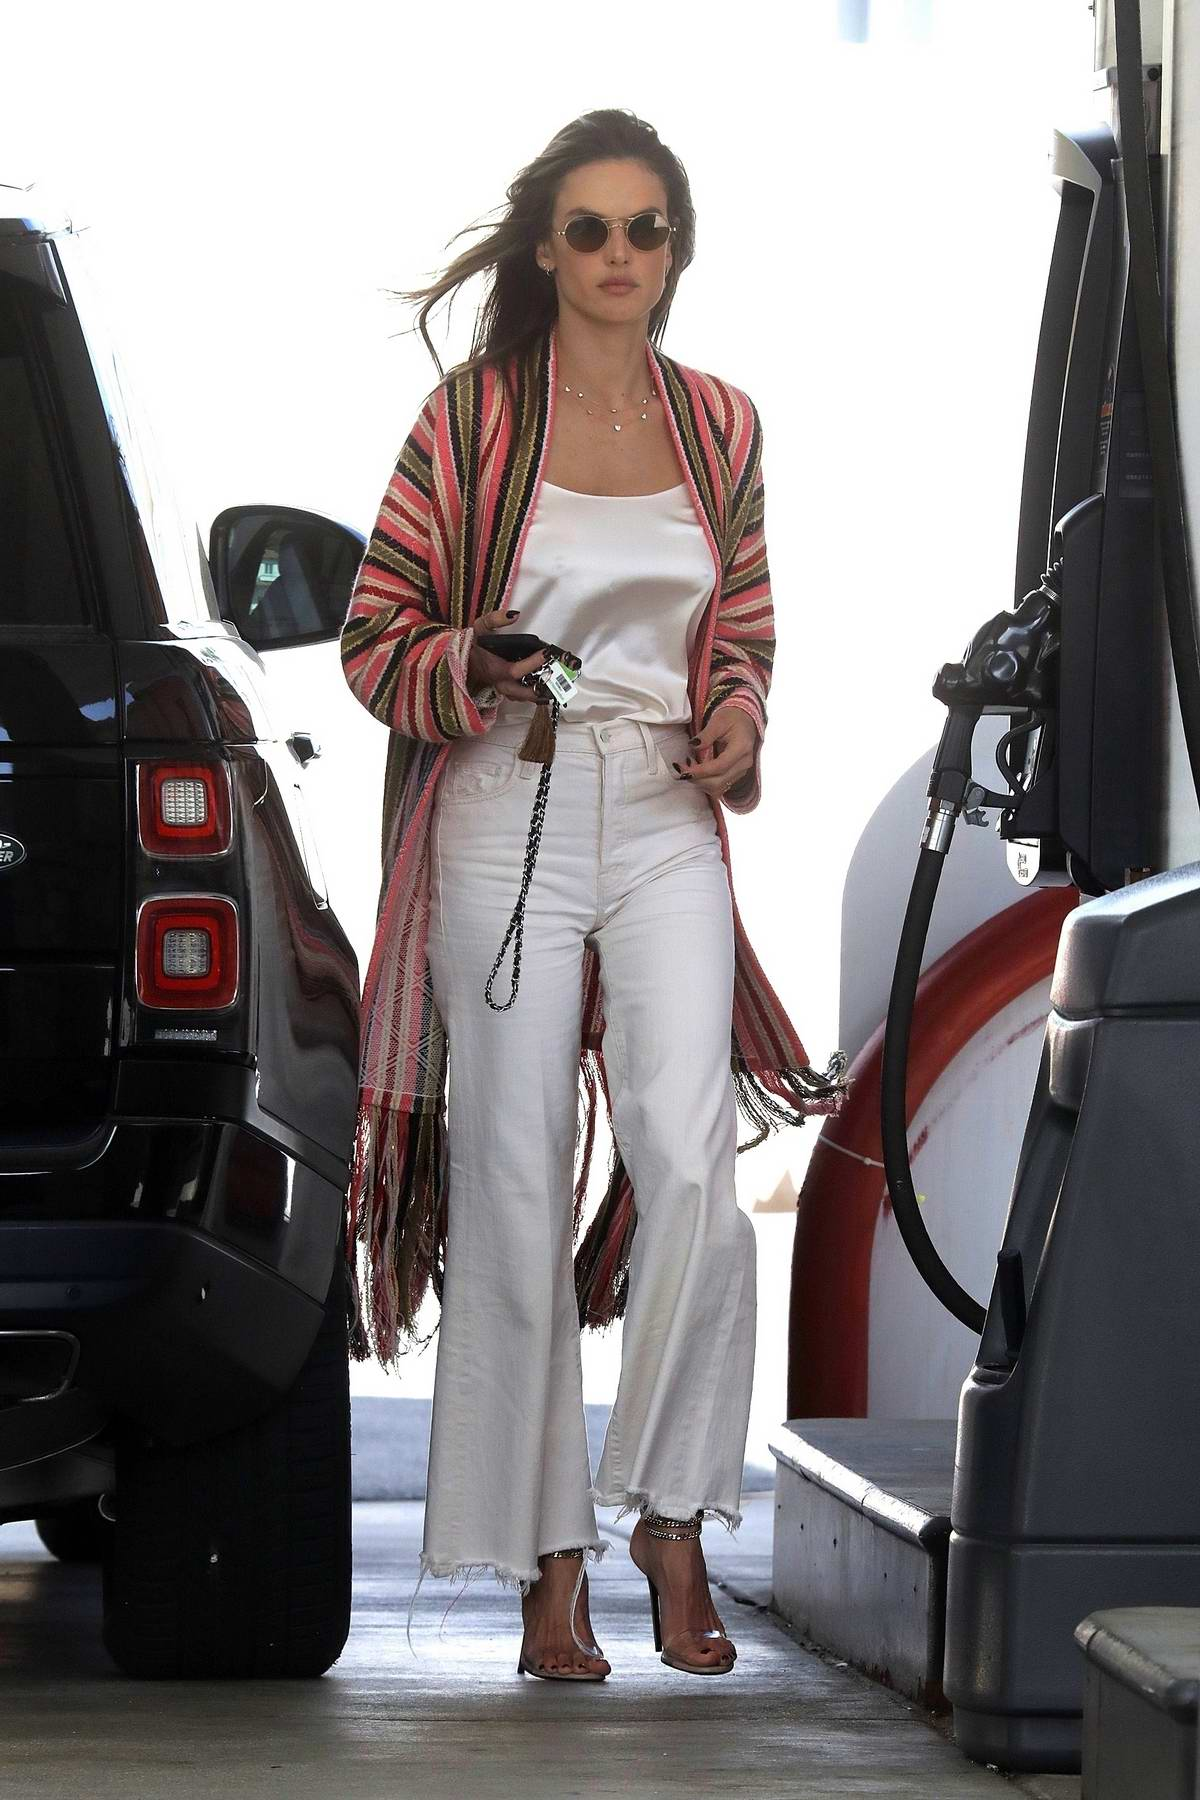 Alessandra Ambrosio looks stunning in a colorful duster over a white tee and flare jeans as she fuels up her Range Rover in Malibu, California